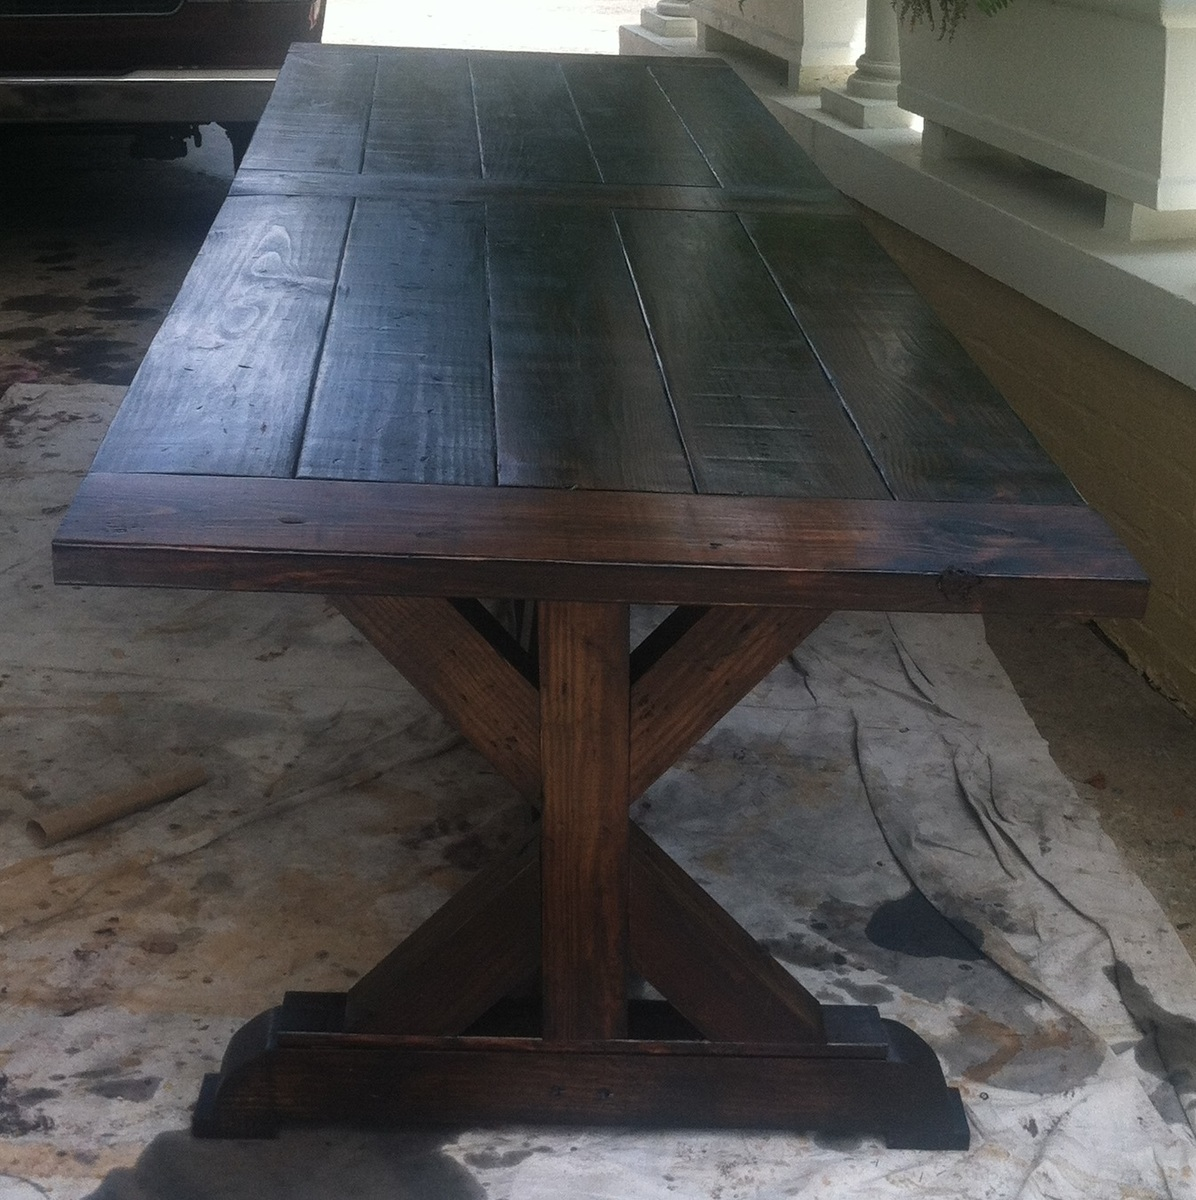 Ana White Dining Room Table: 10.5' Farmhouse Dining Table - DIY Projects